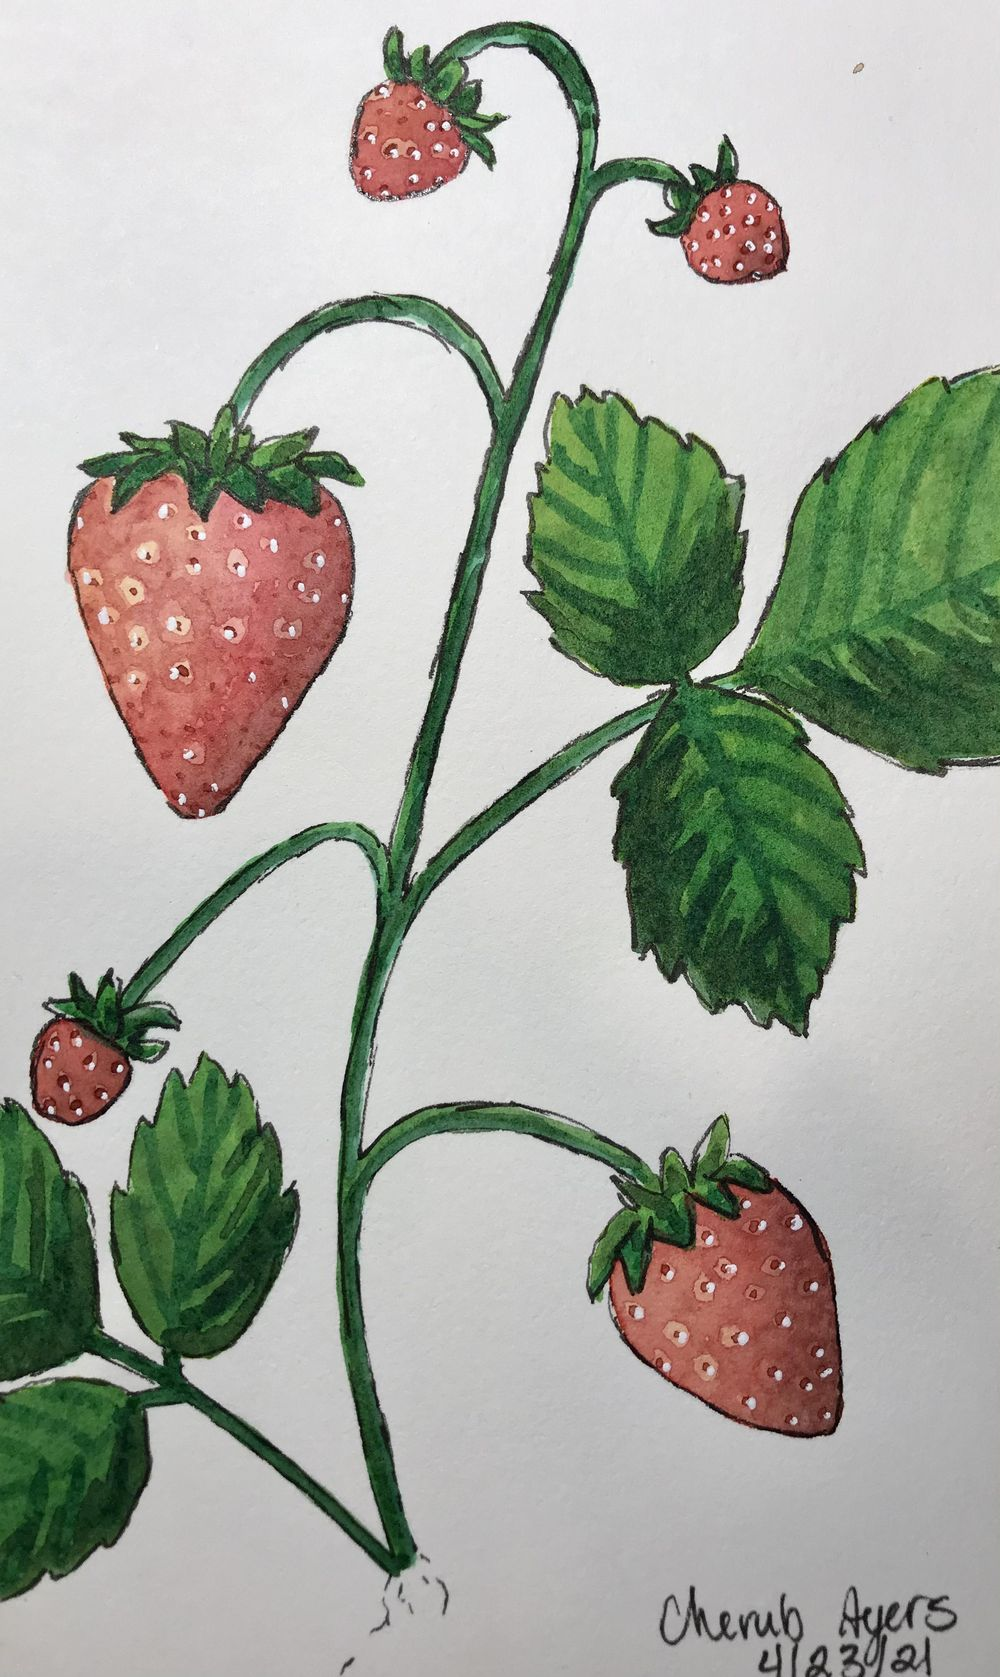 Strawberry Painting - image 1 - student project